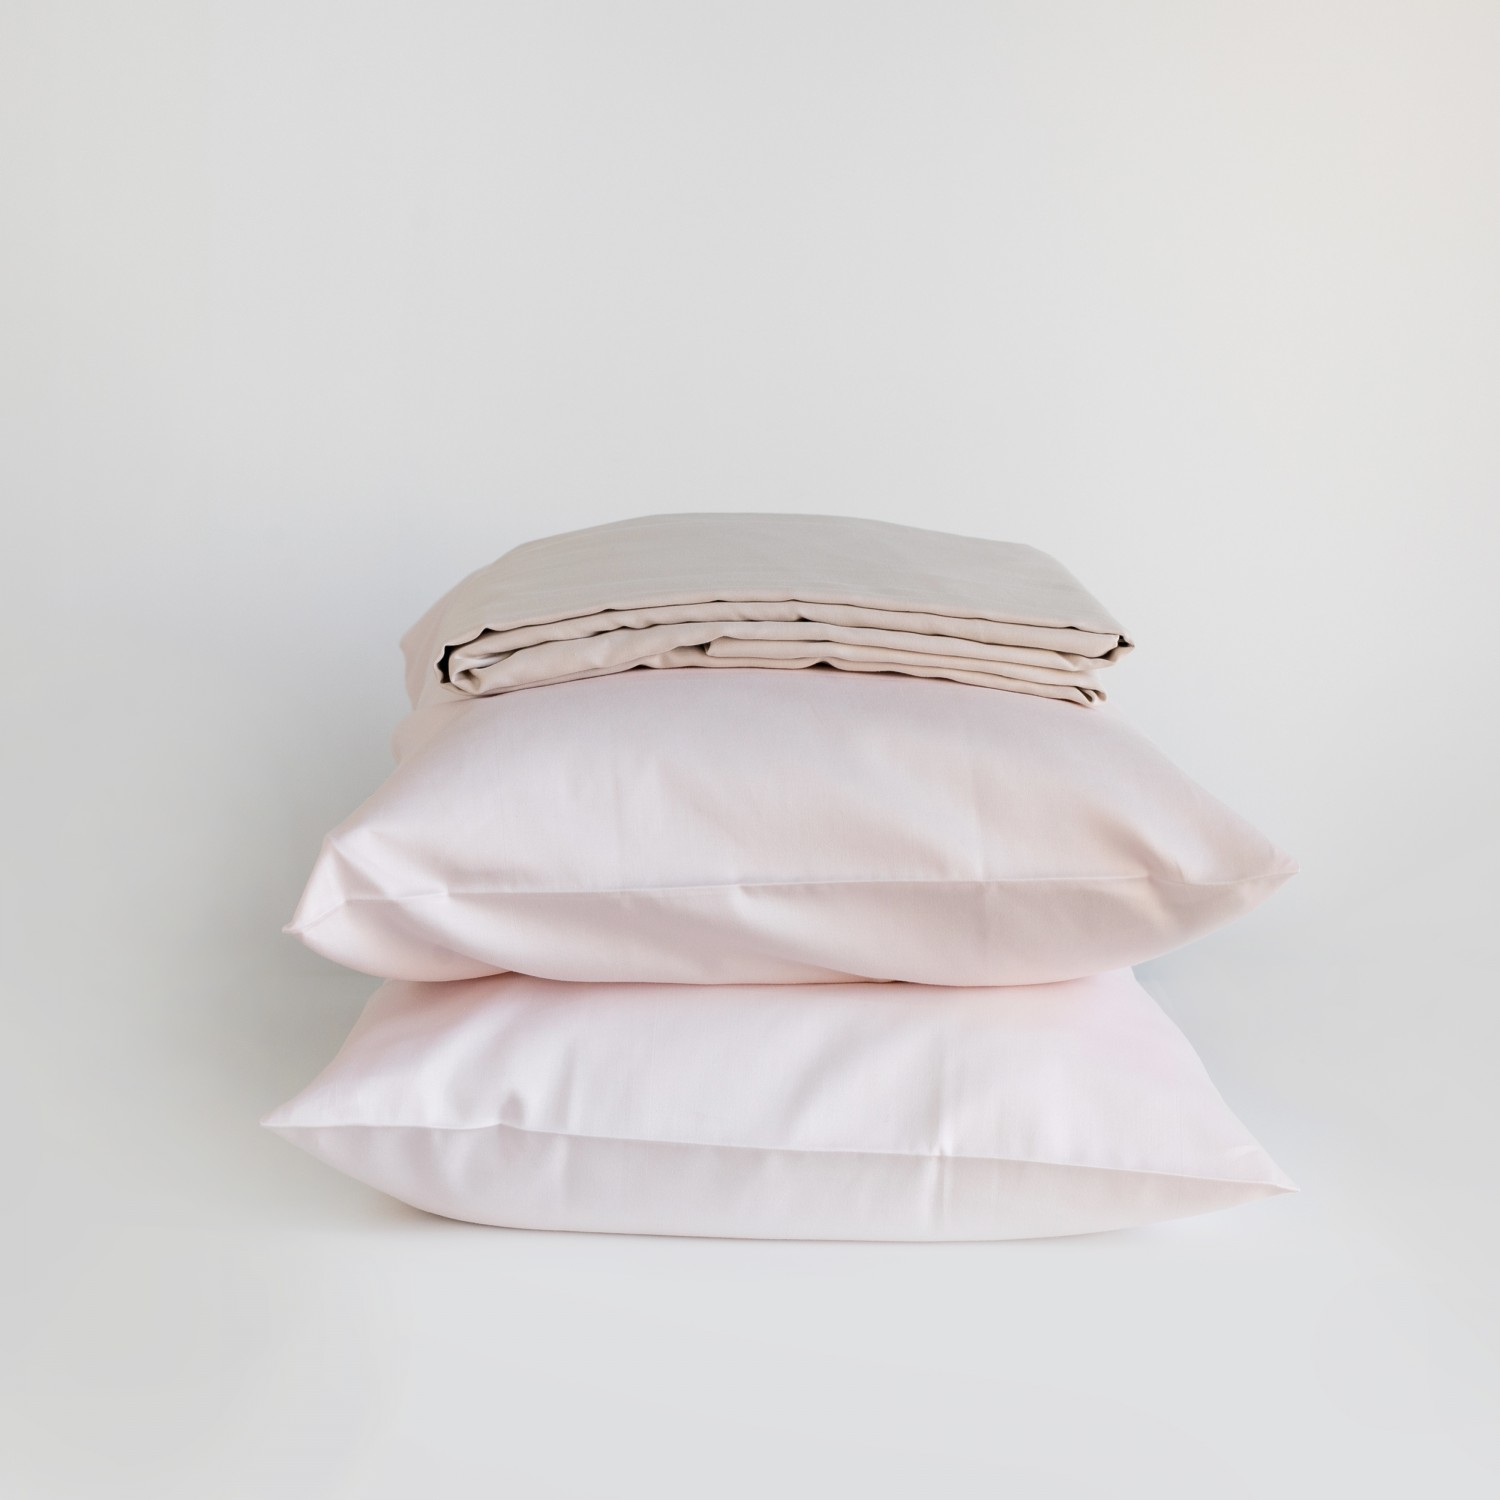 2 pillows + sateen sheet